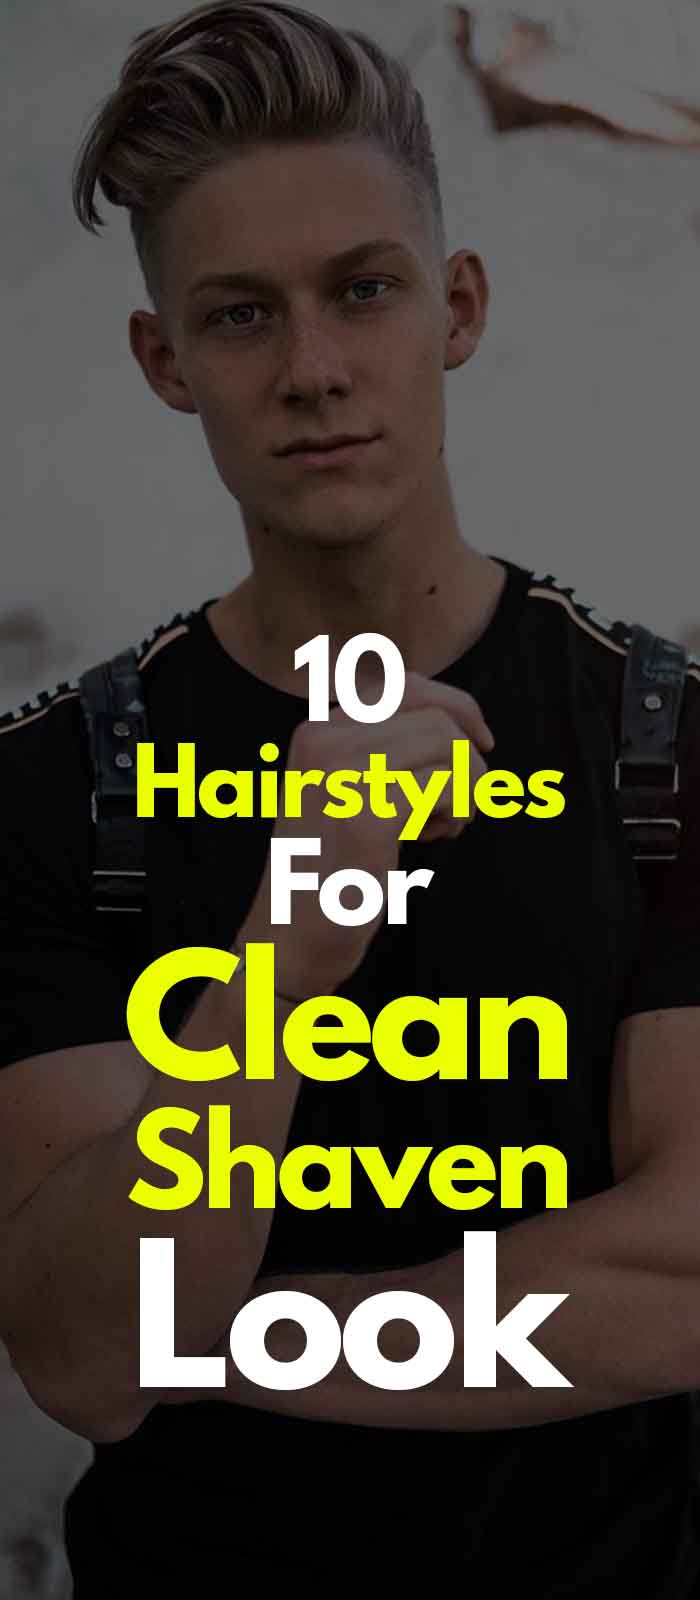 Cool Hairstyle for the clean shaven face!